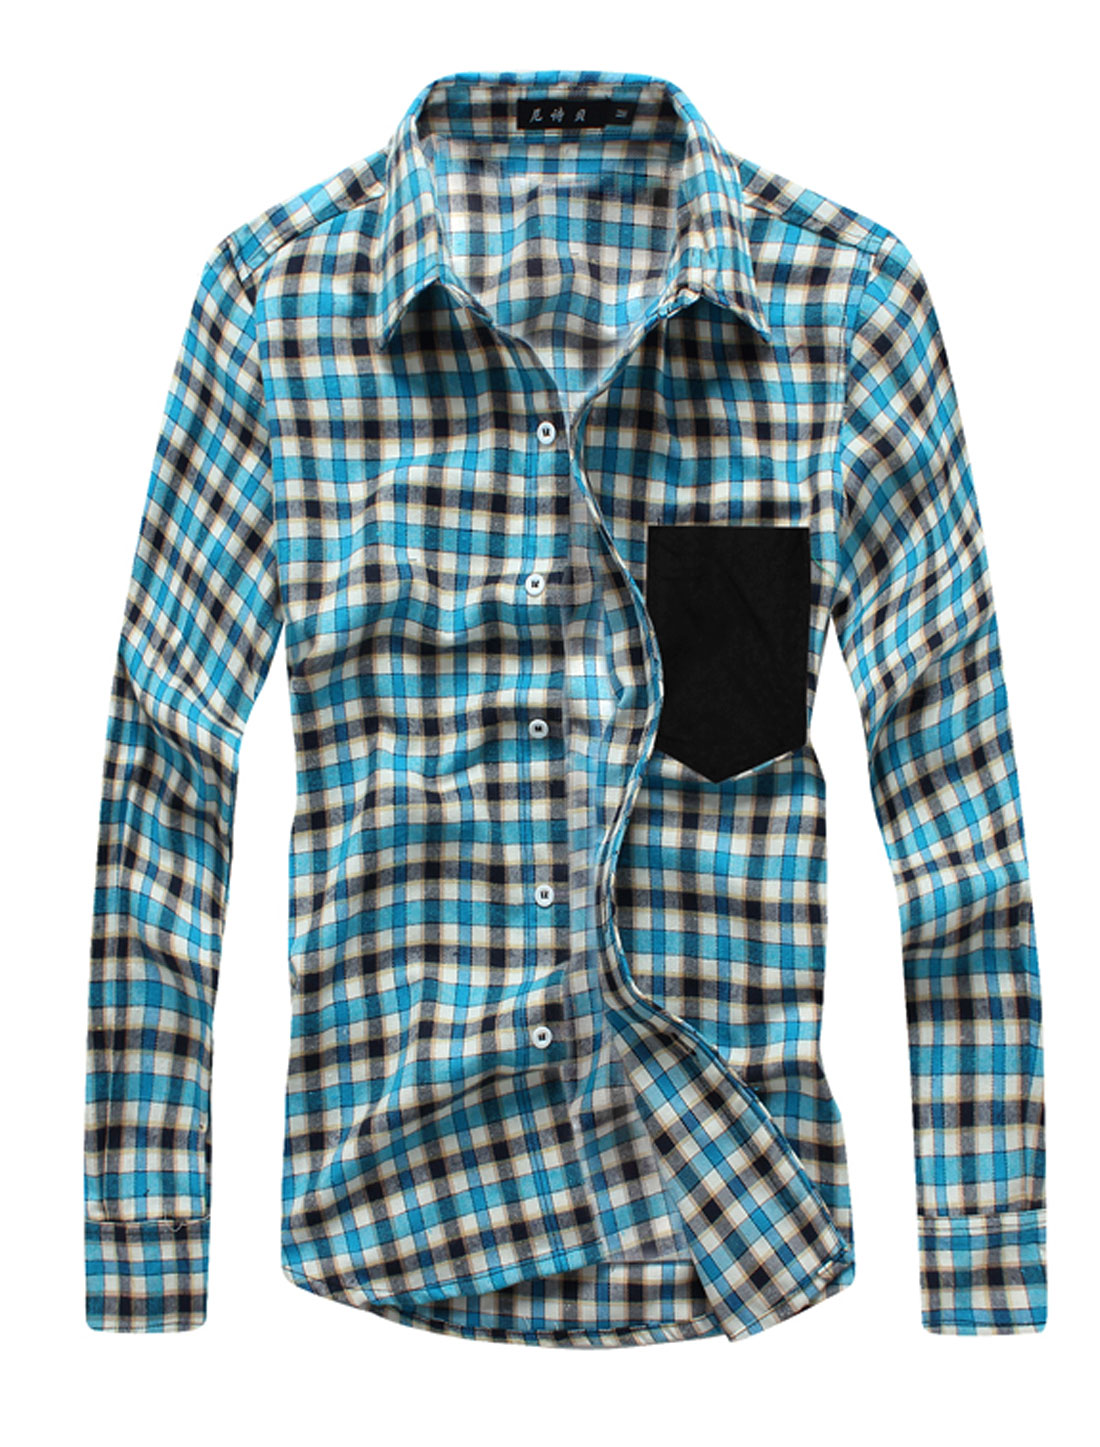 NEW Long Sleeve Button Up Plaids Blue Beige Casual Shirts for Man M